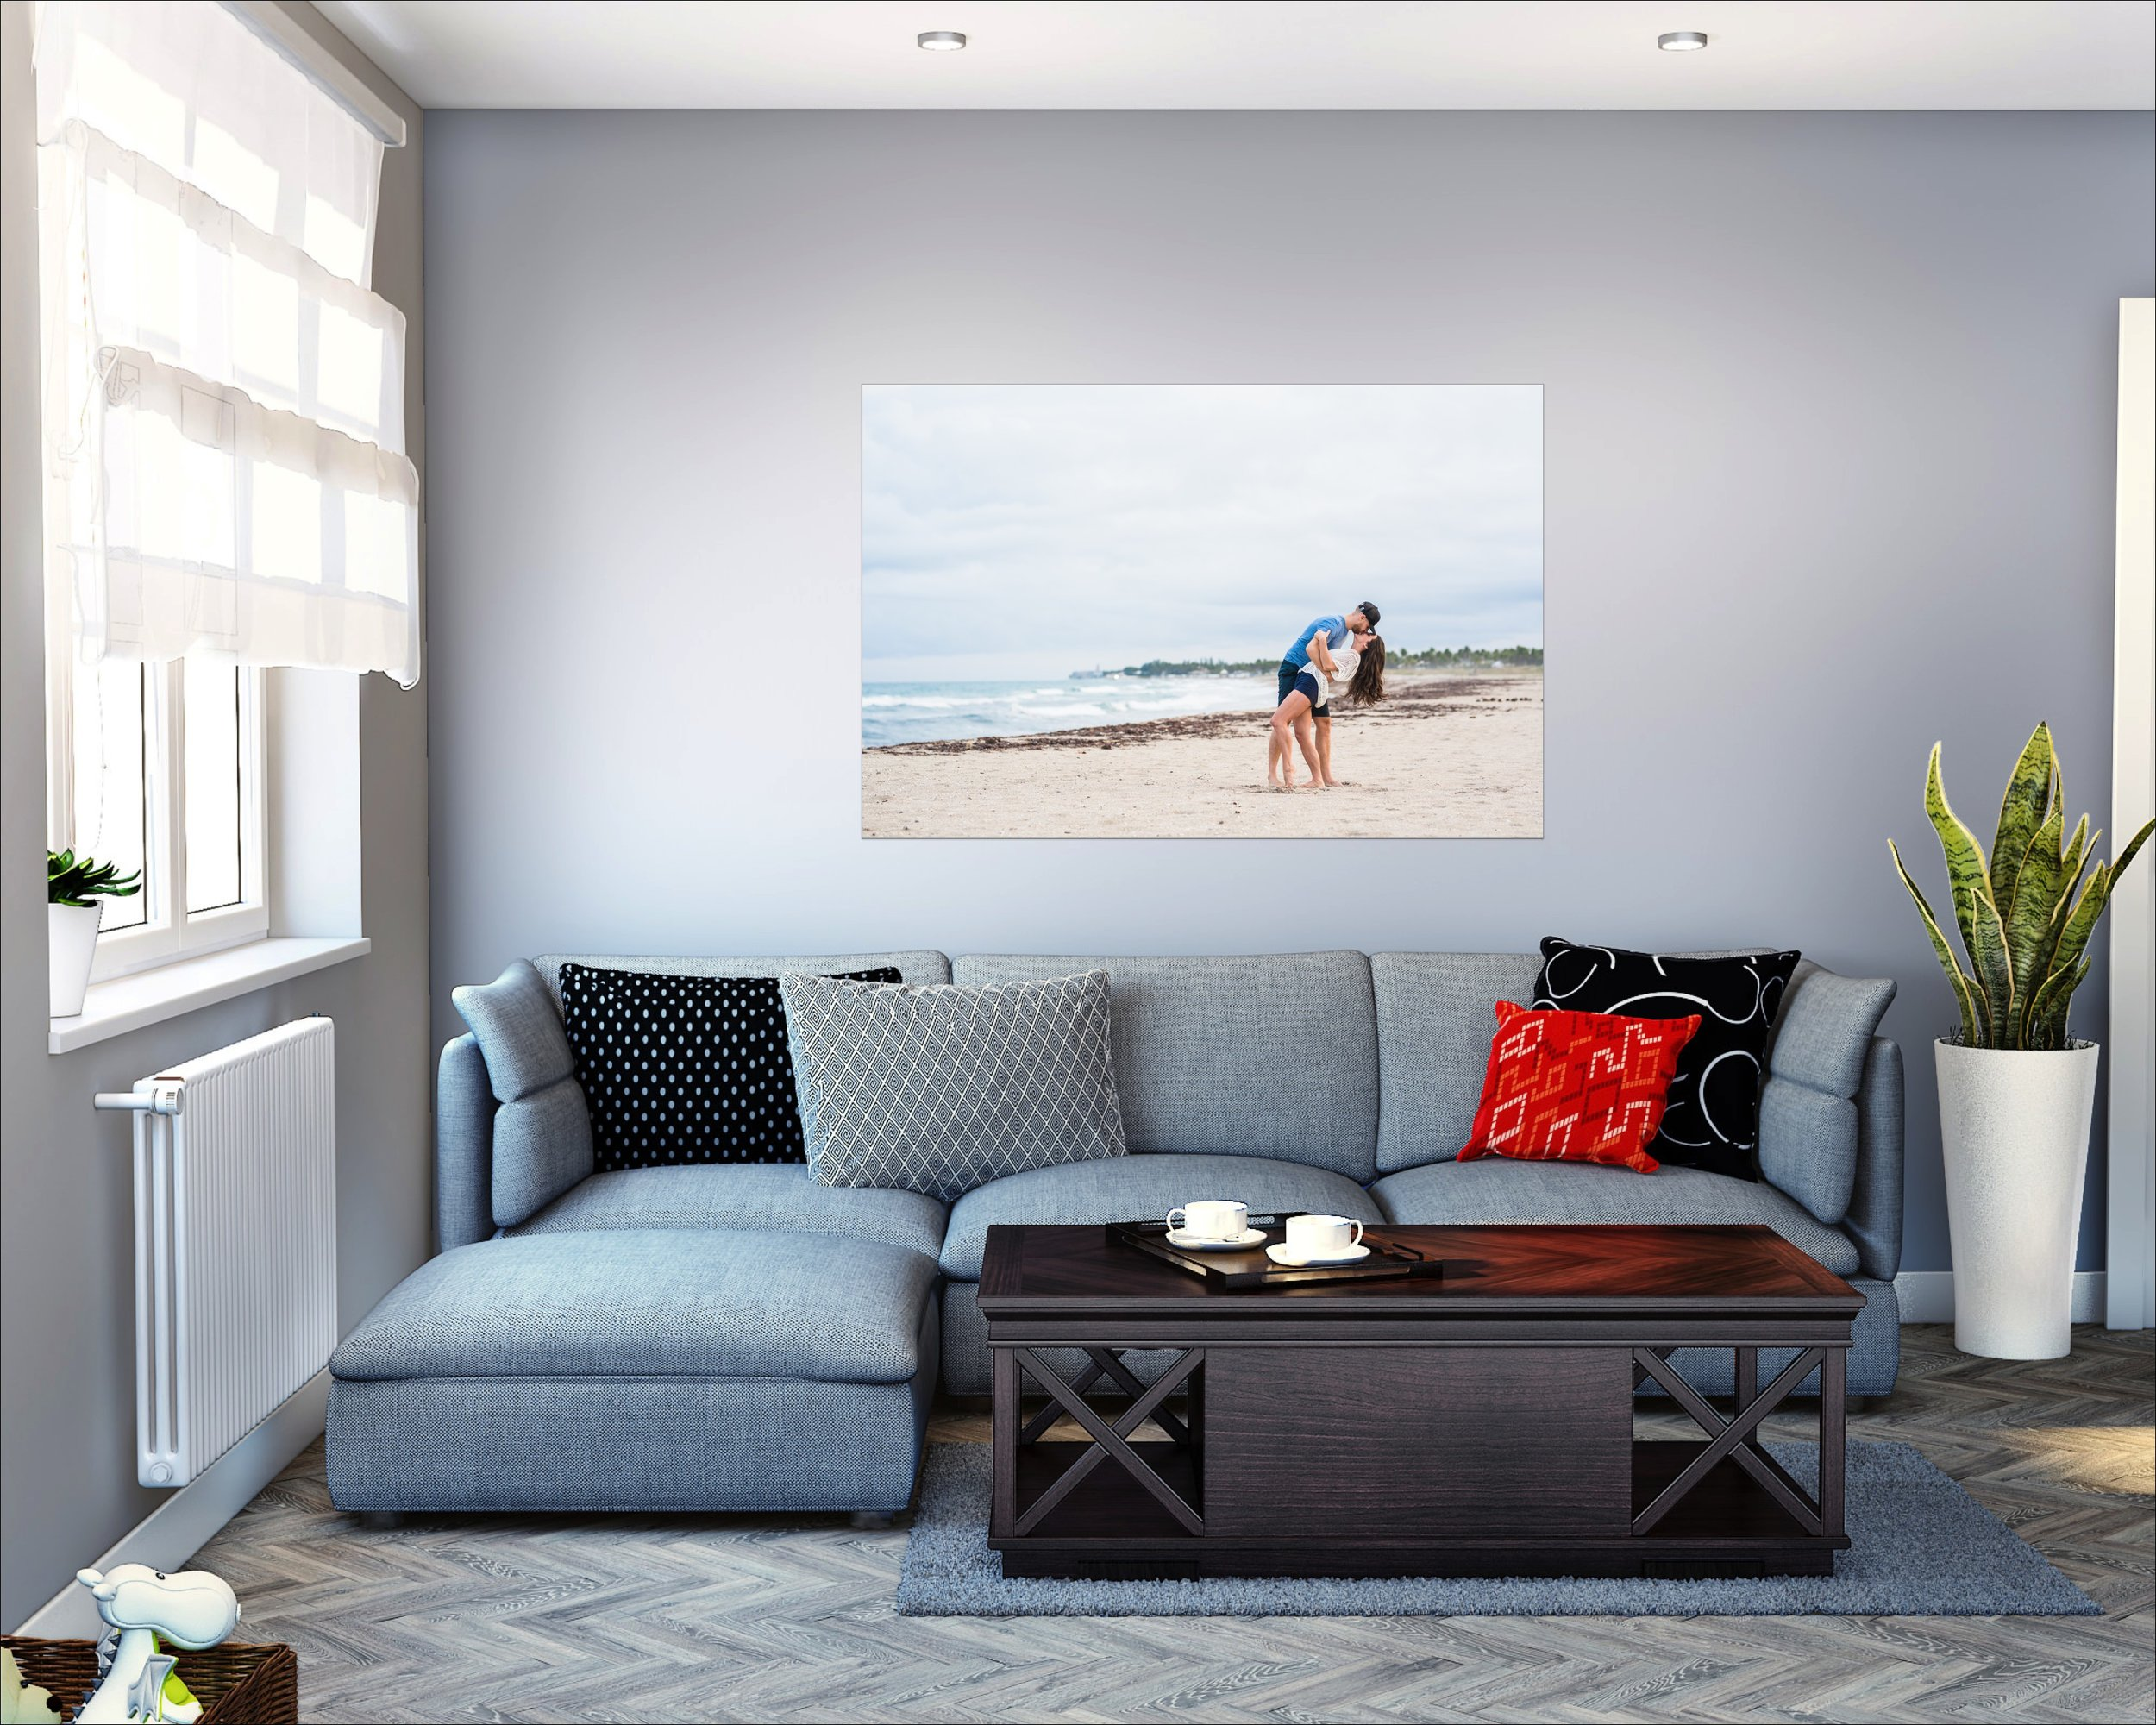 Wall Art - Beautiful statement pieces that you will be able to hang on the walls of your home.